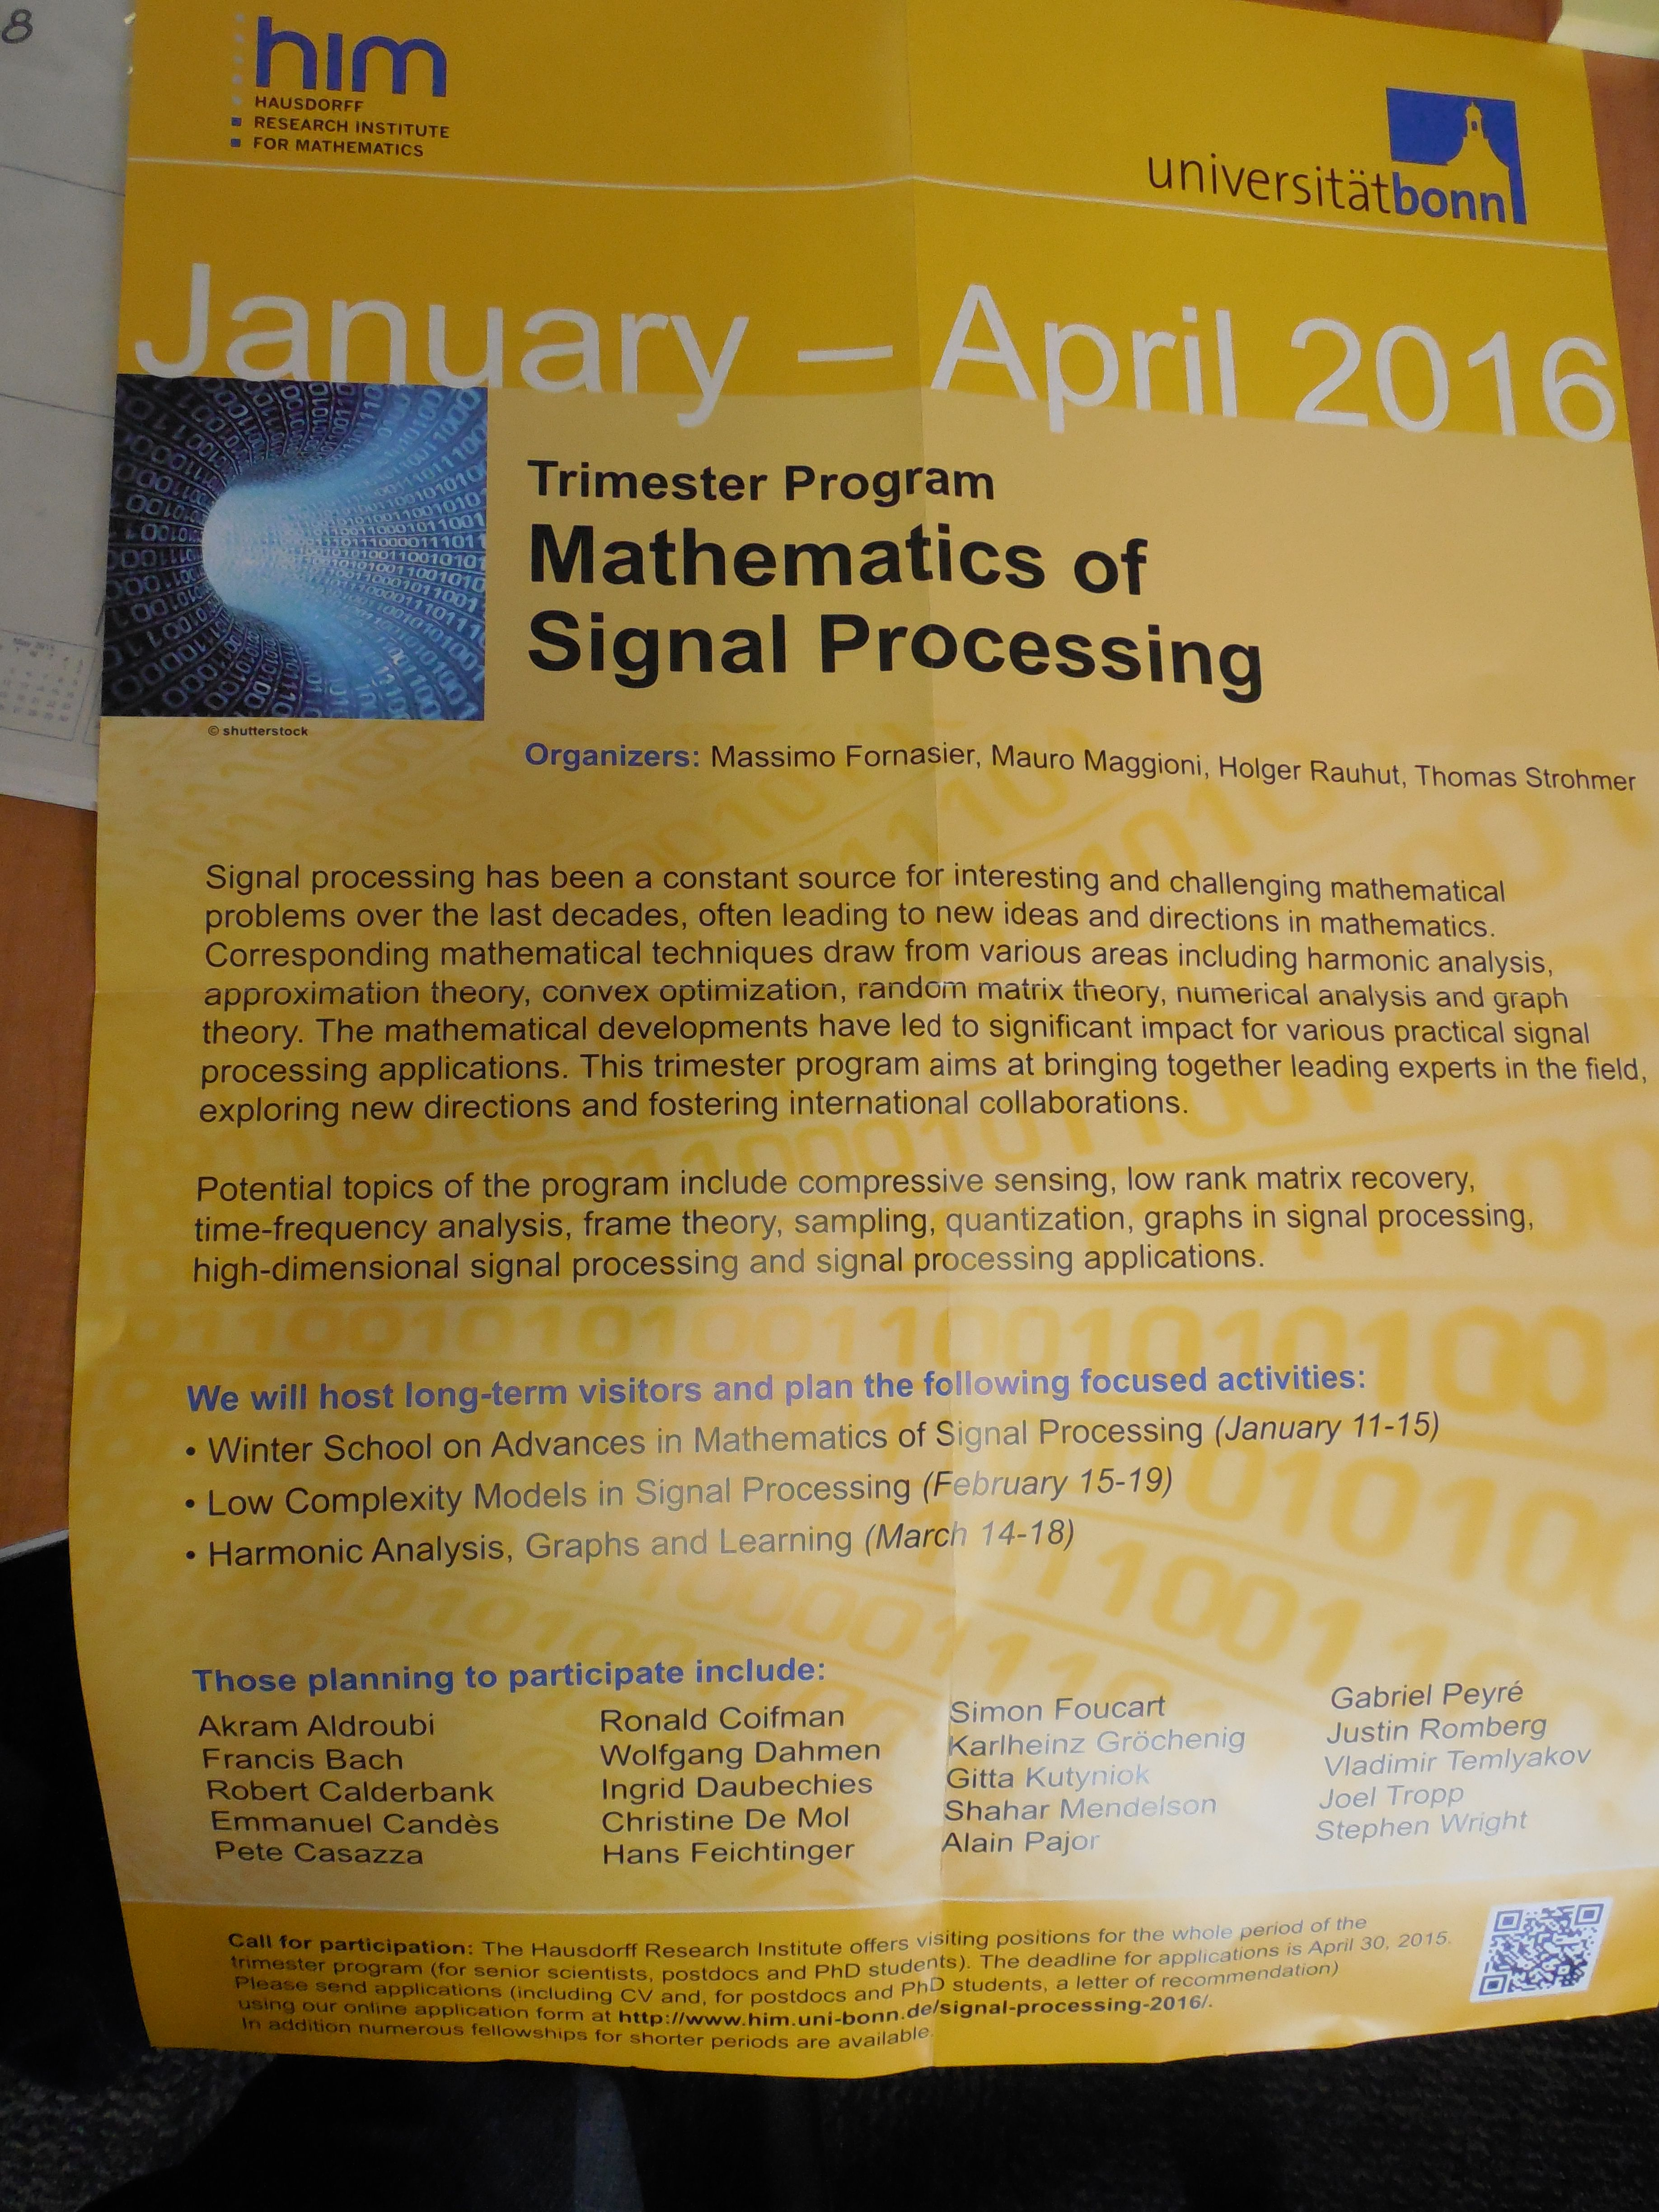 Trimester Program Of Mathematics Of Signal Processing At The